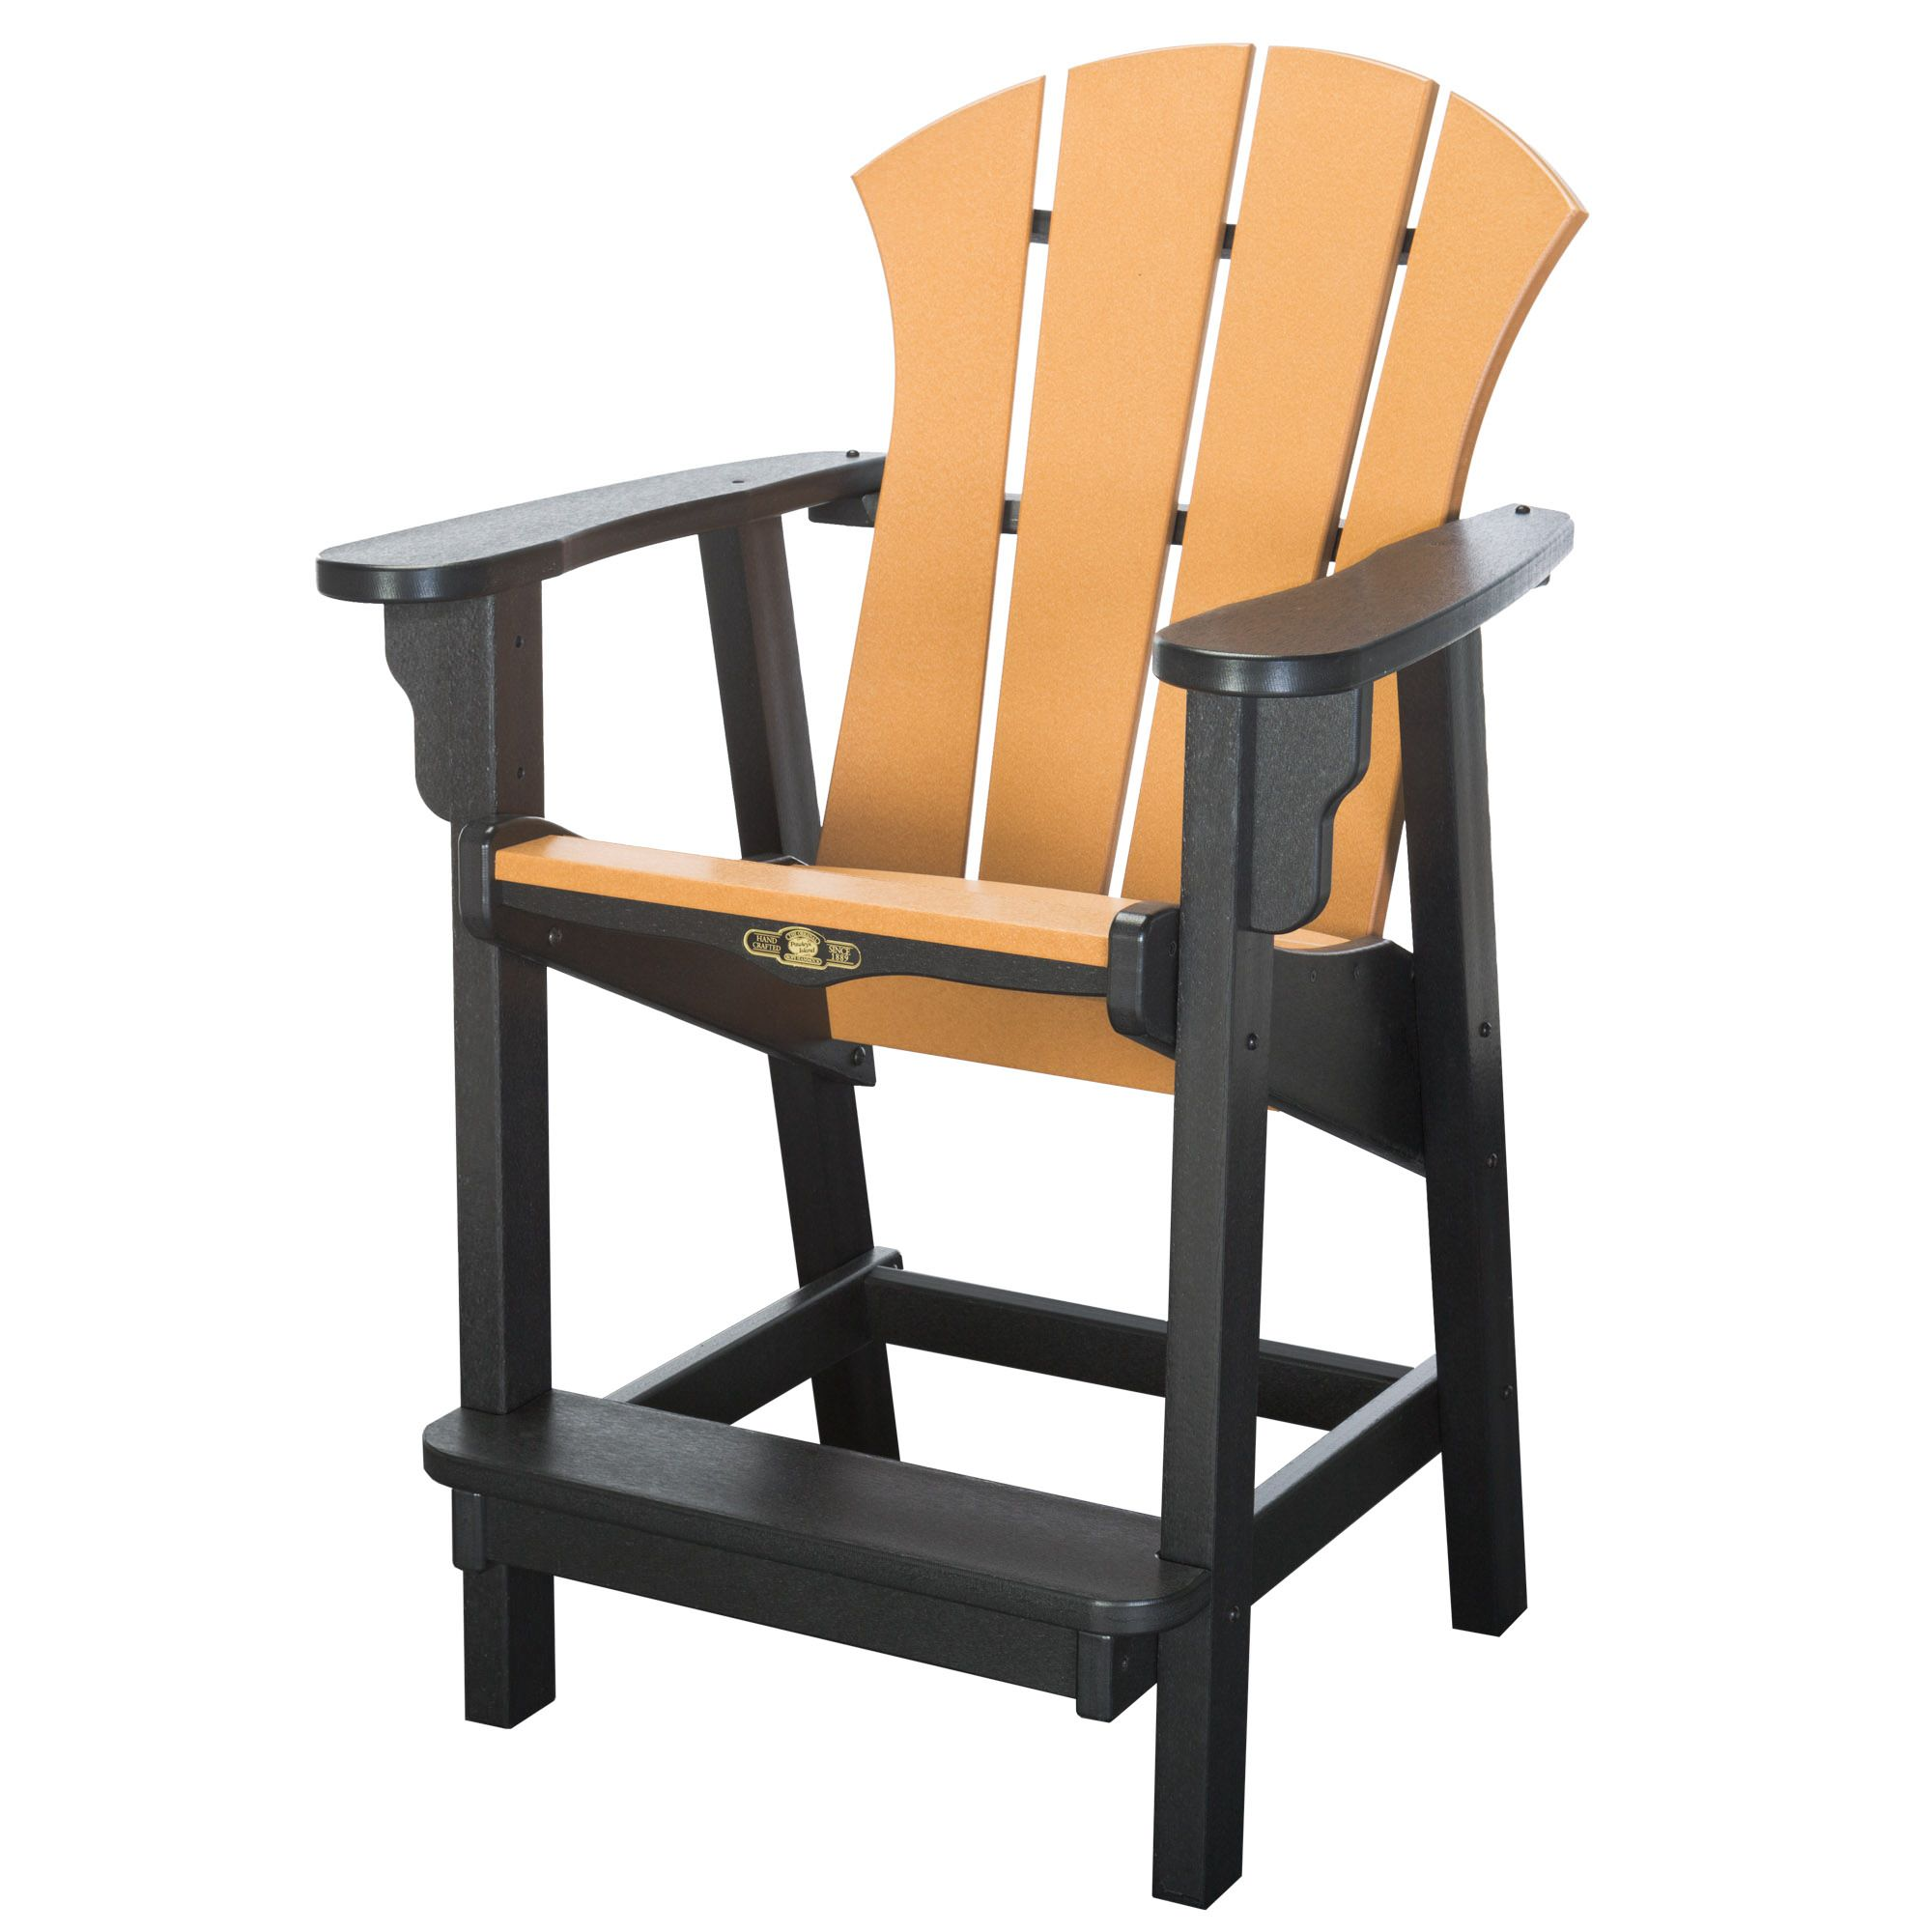 Shop Durawood Sunrise Counter Height Chairs On Sale Dfohome